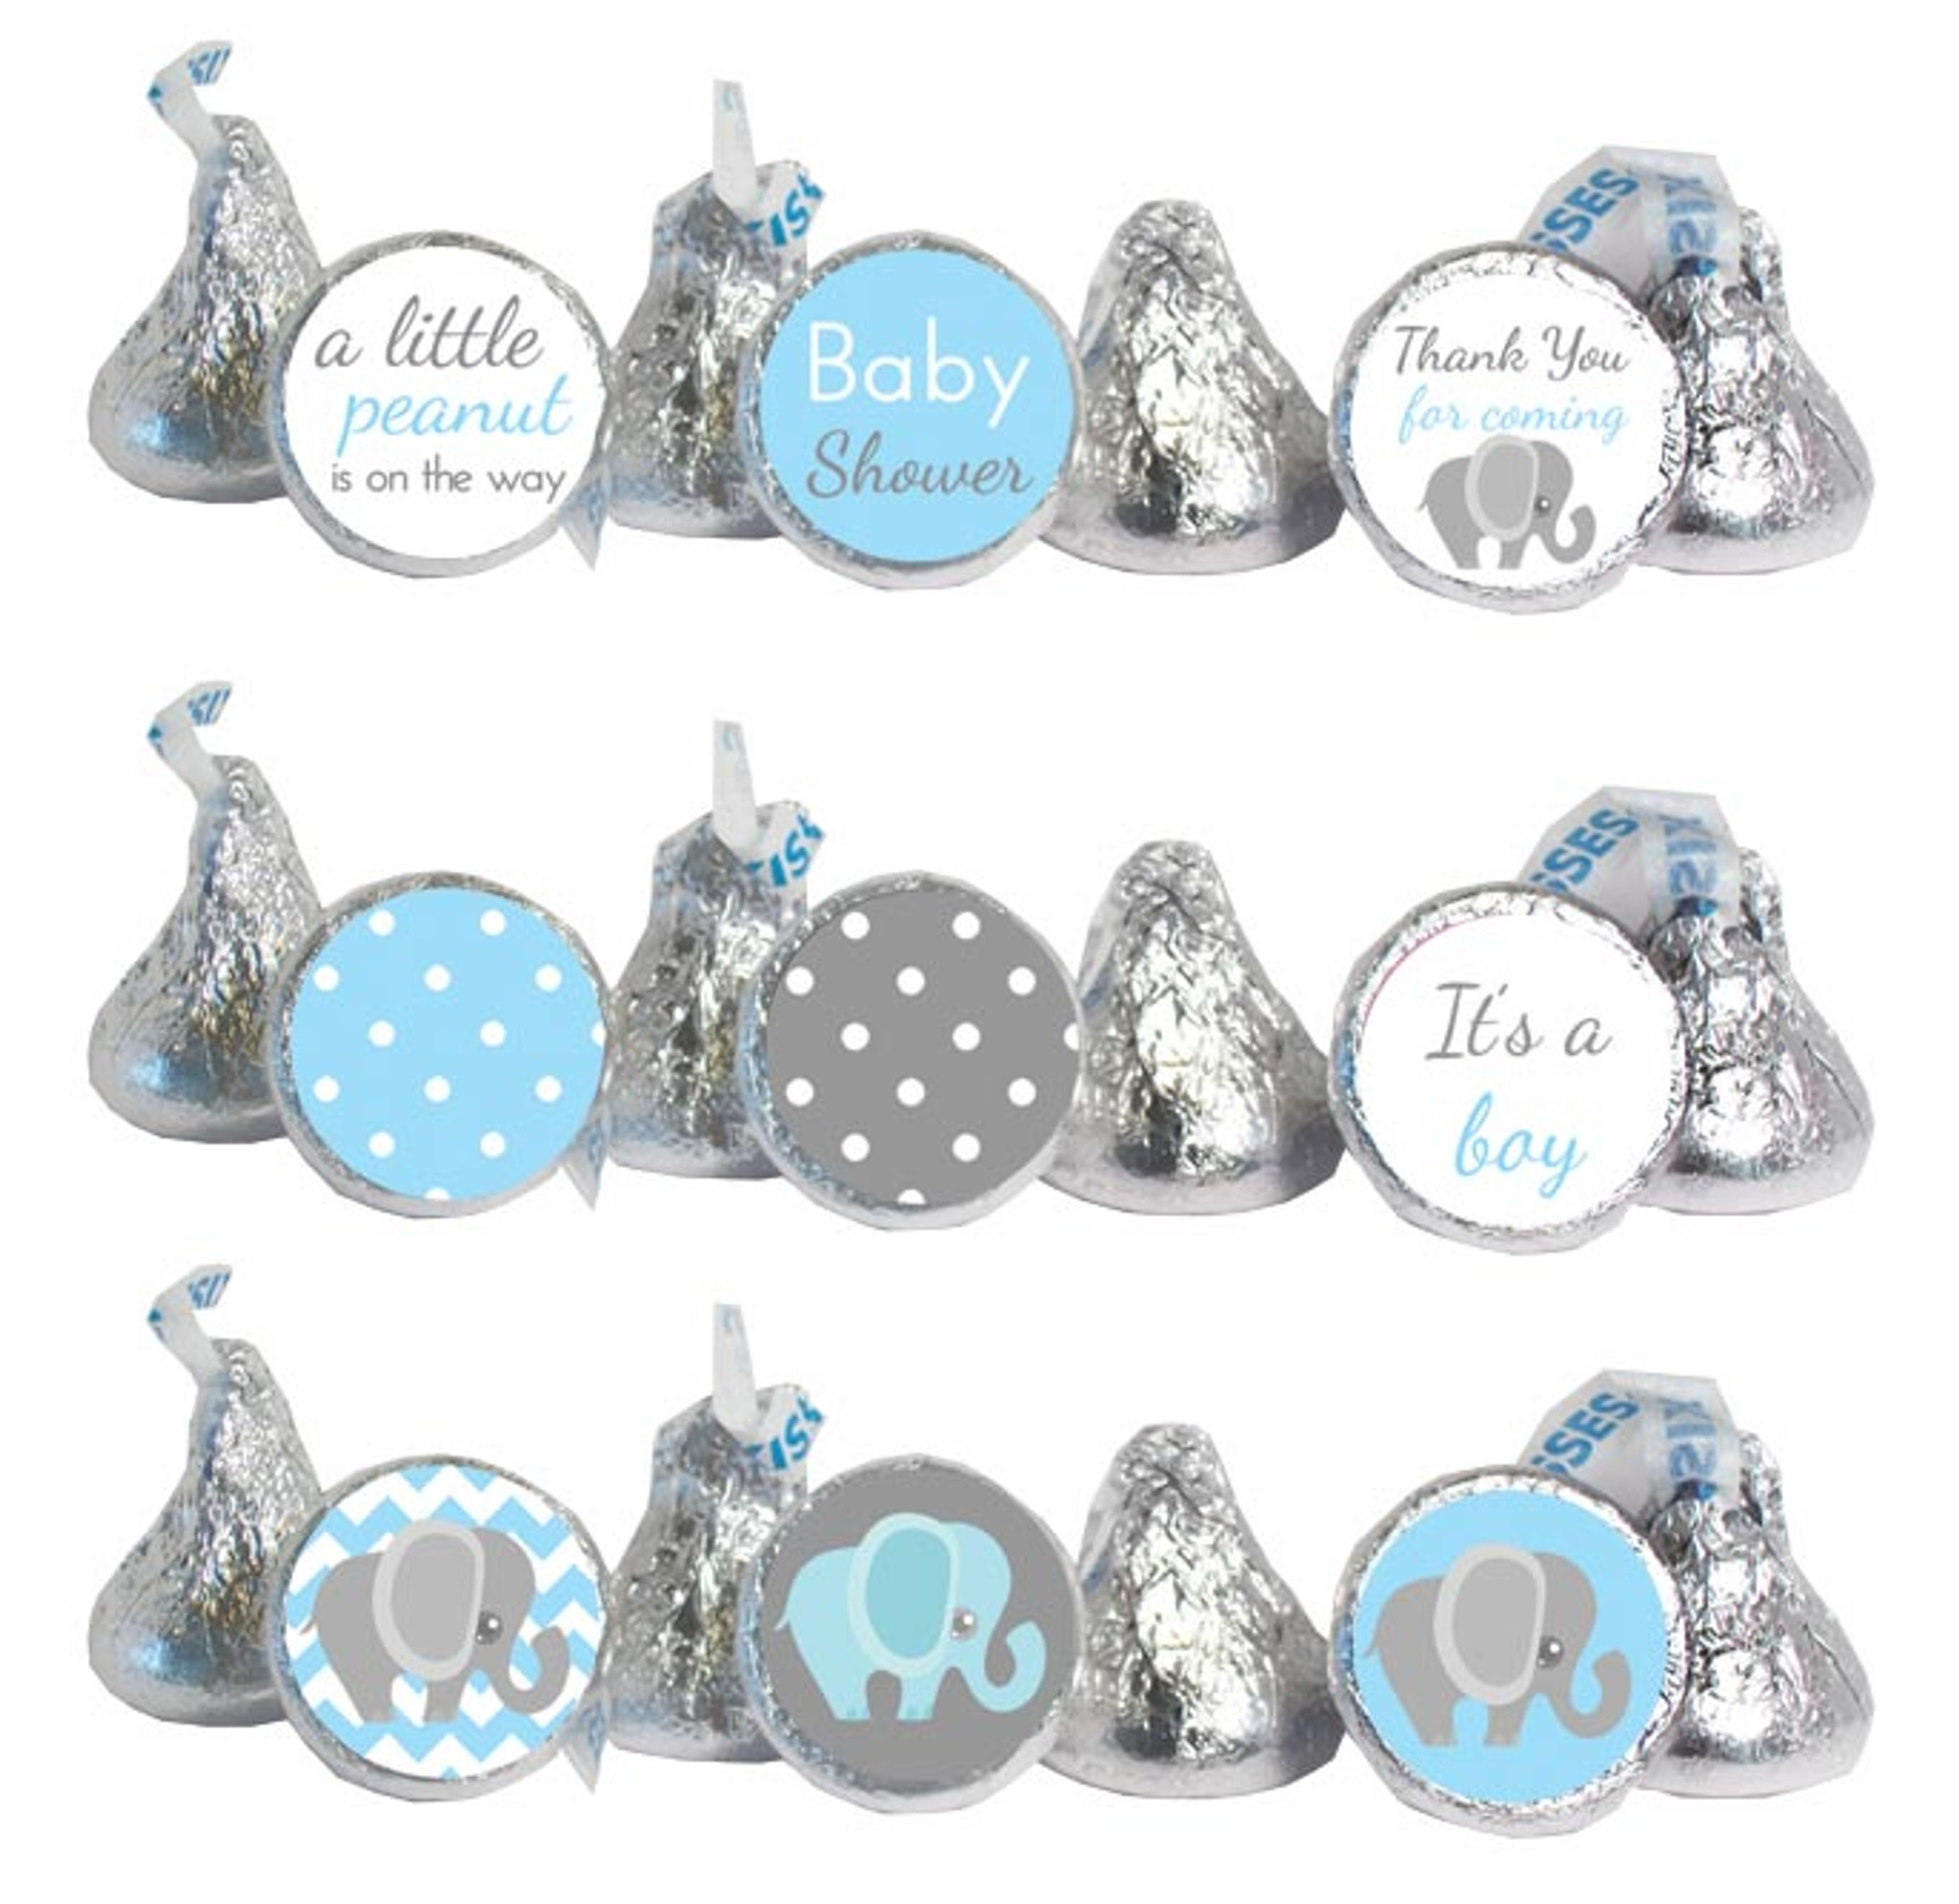 108 It/'s a Boy Owl Stickers Labels Baby Shower Party Favors Kisses Man Its